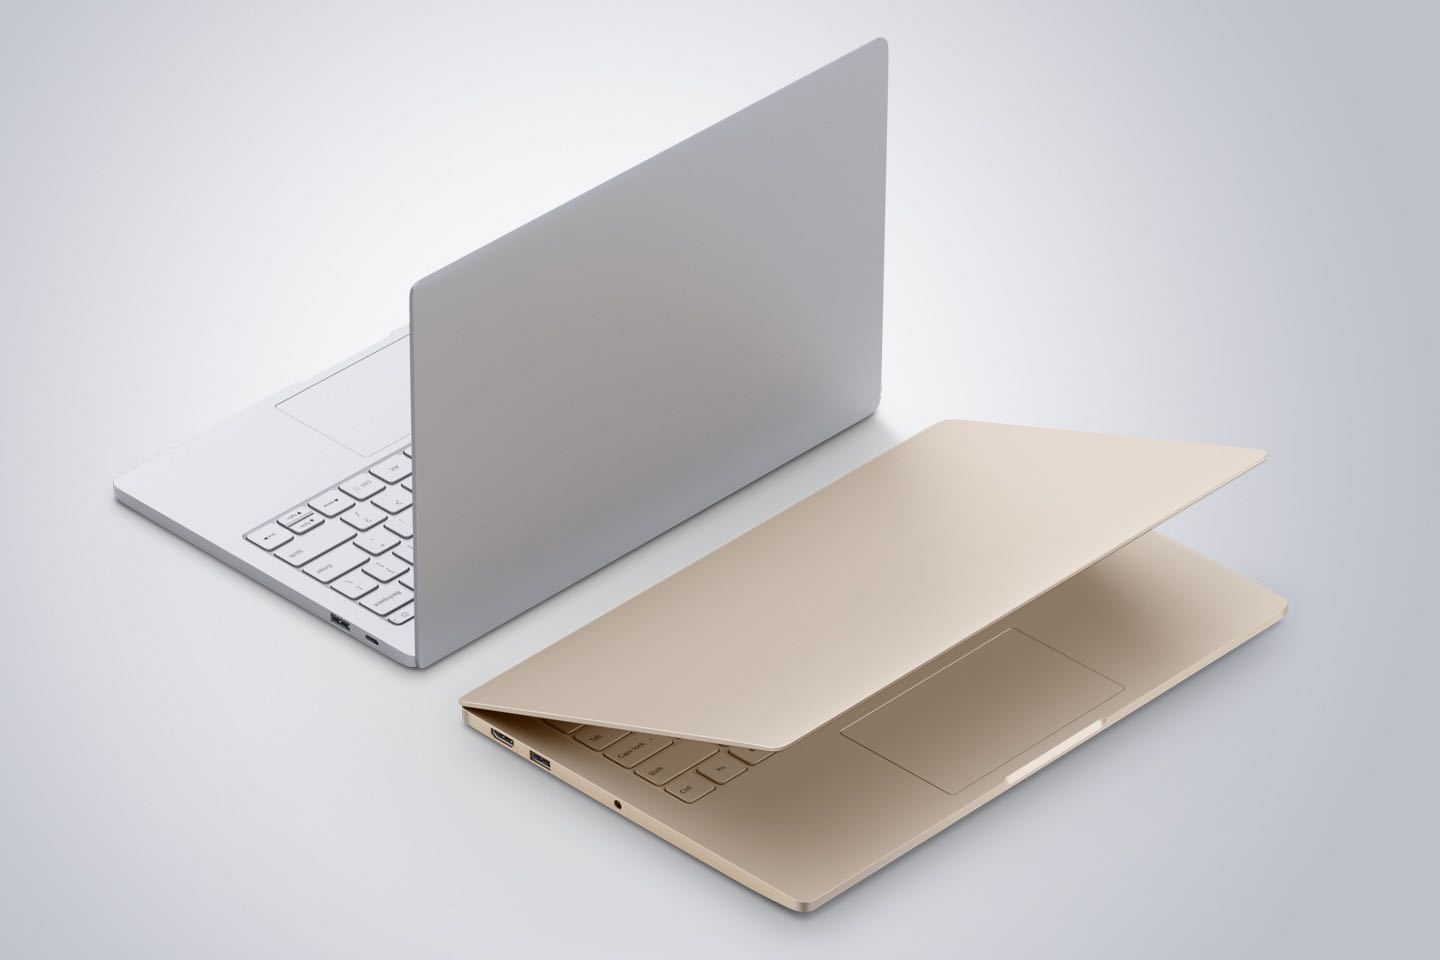 Xiaomi Mi Notebook Air 4G LTE 2